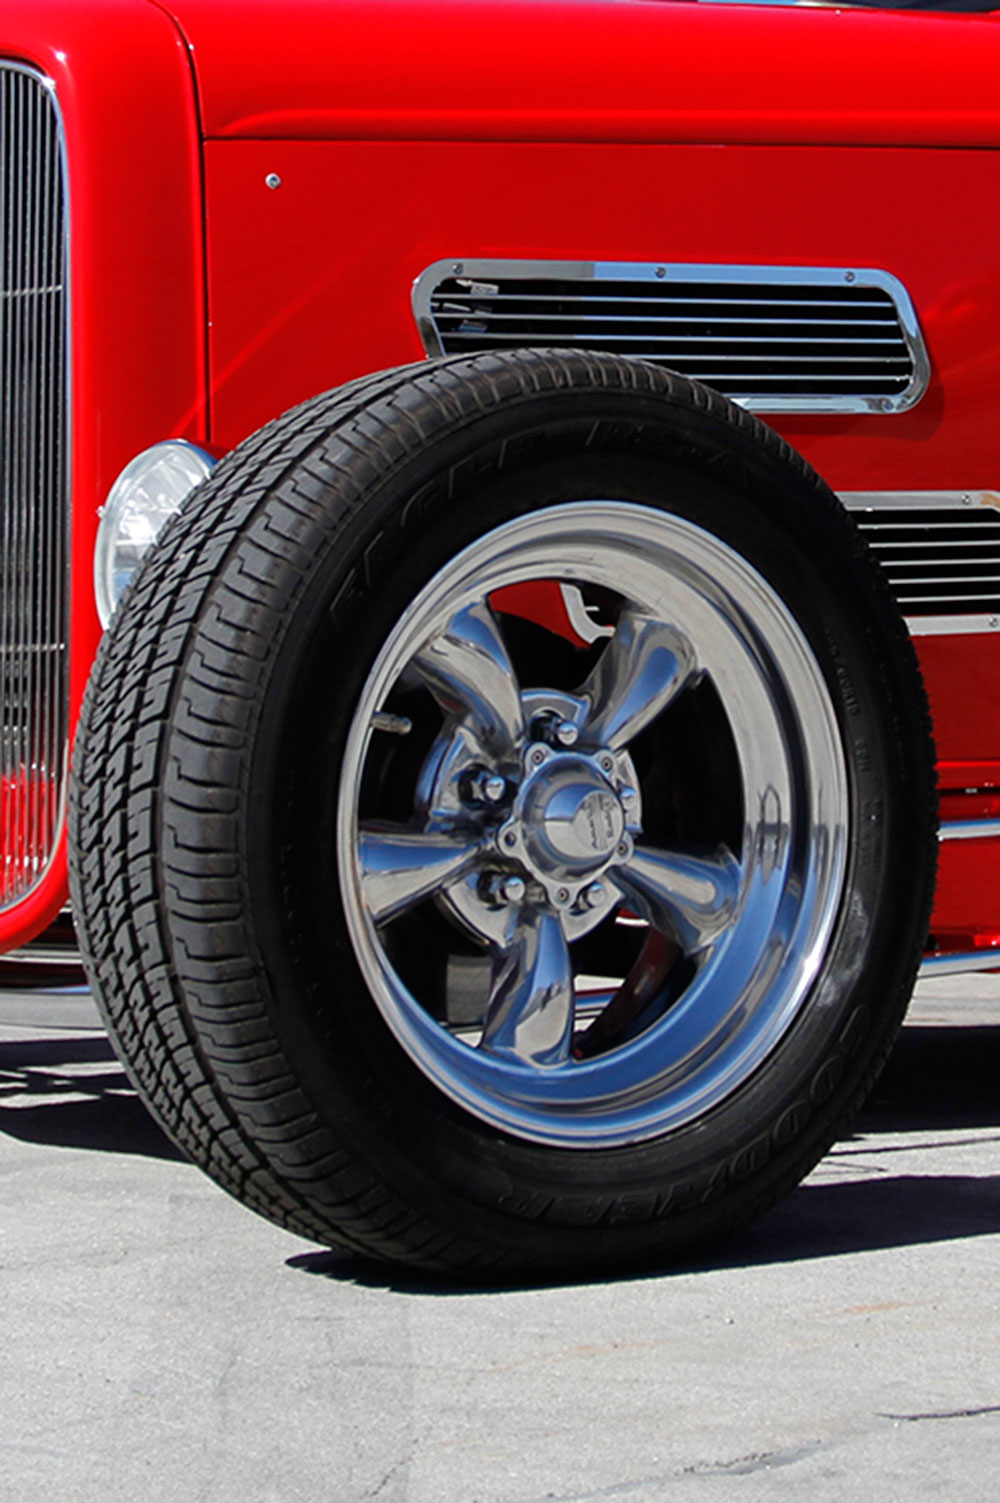 Custom 1932 Ford Roadster Build Becomes A Huge Hobby For Retiree Fuel Filter The Wheels Come From American Torqthrust And Tires Are Bf Goodrich